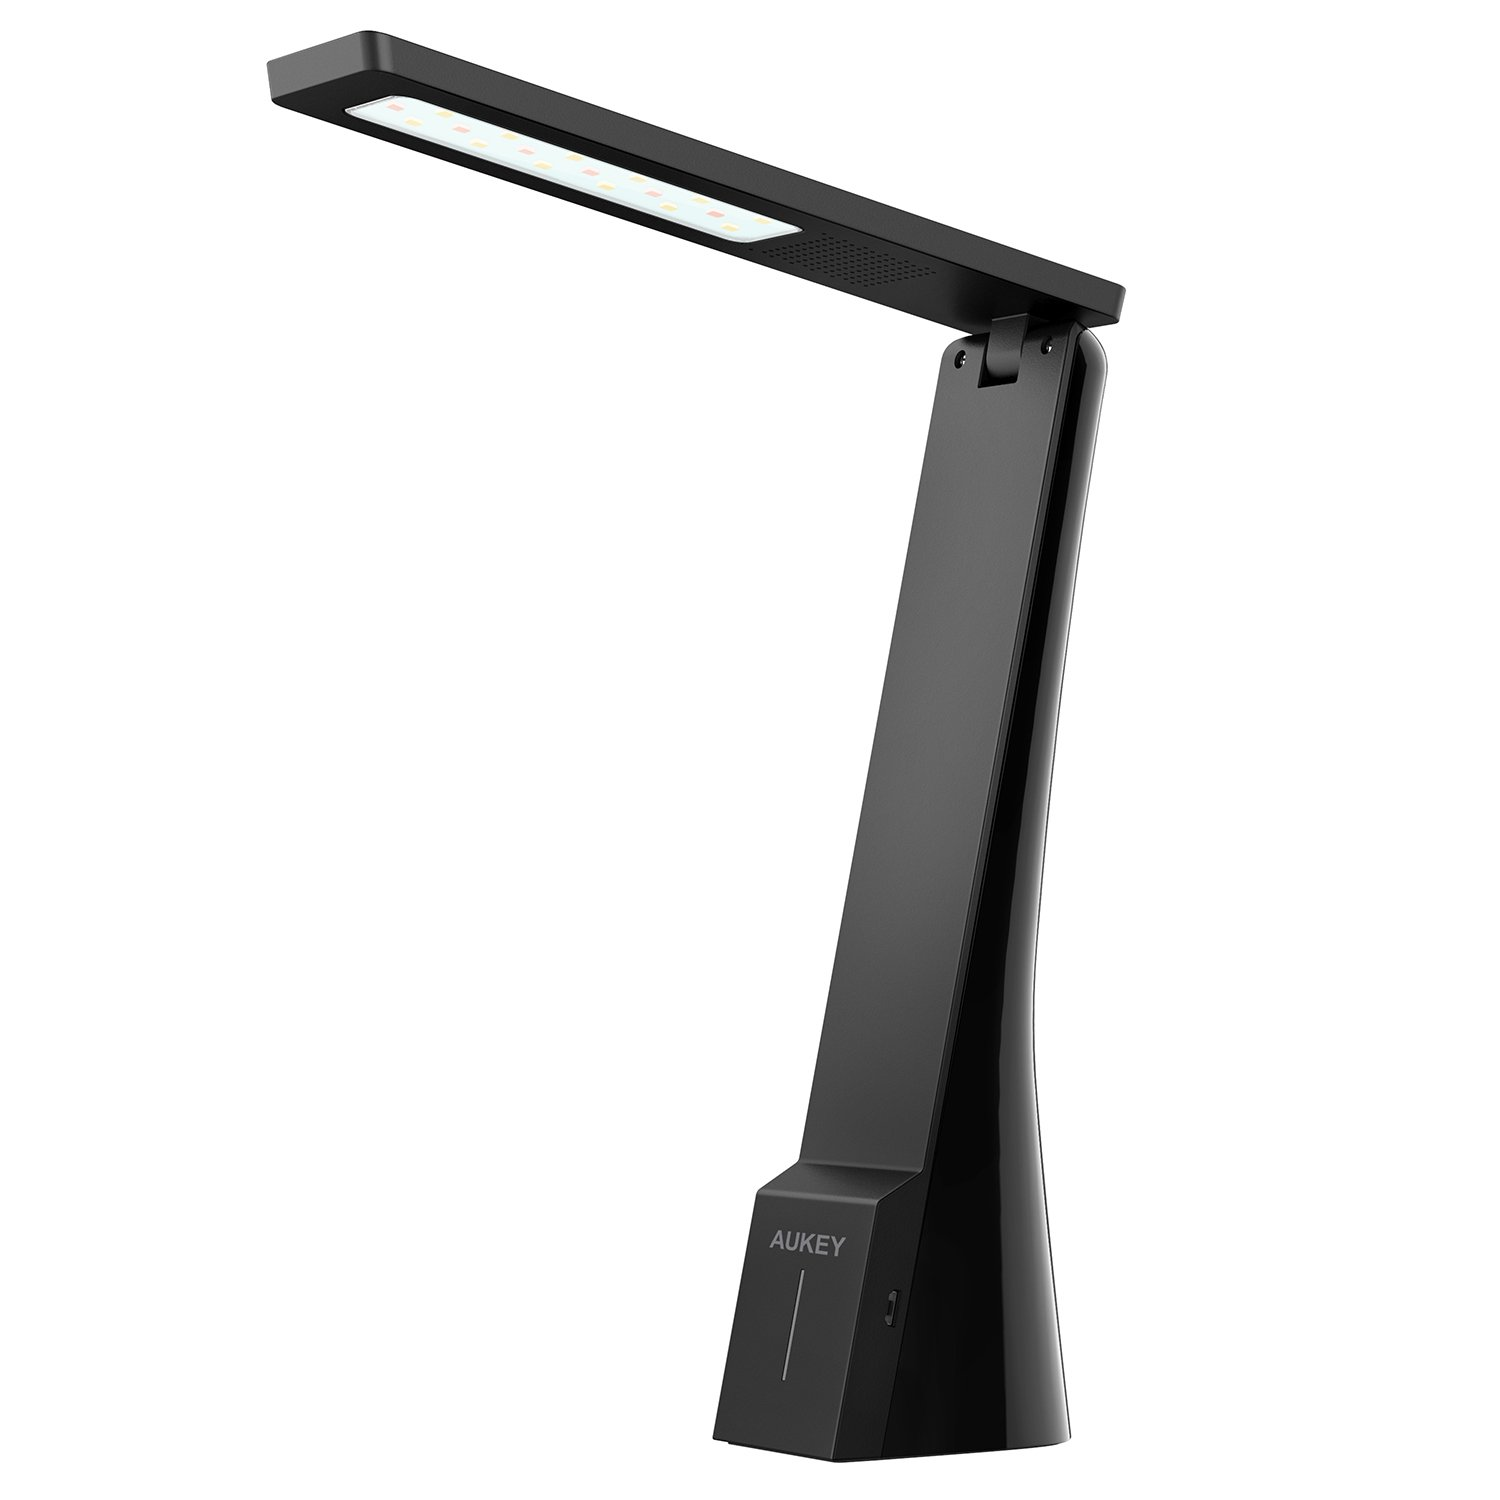 aukey schreibtischlampe led dimmbar faltbare tischleuchte touch bedienung usb ebay. Black Bedroom Furniture Sets. Home Design Ideas